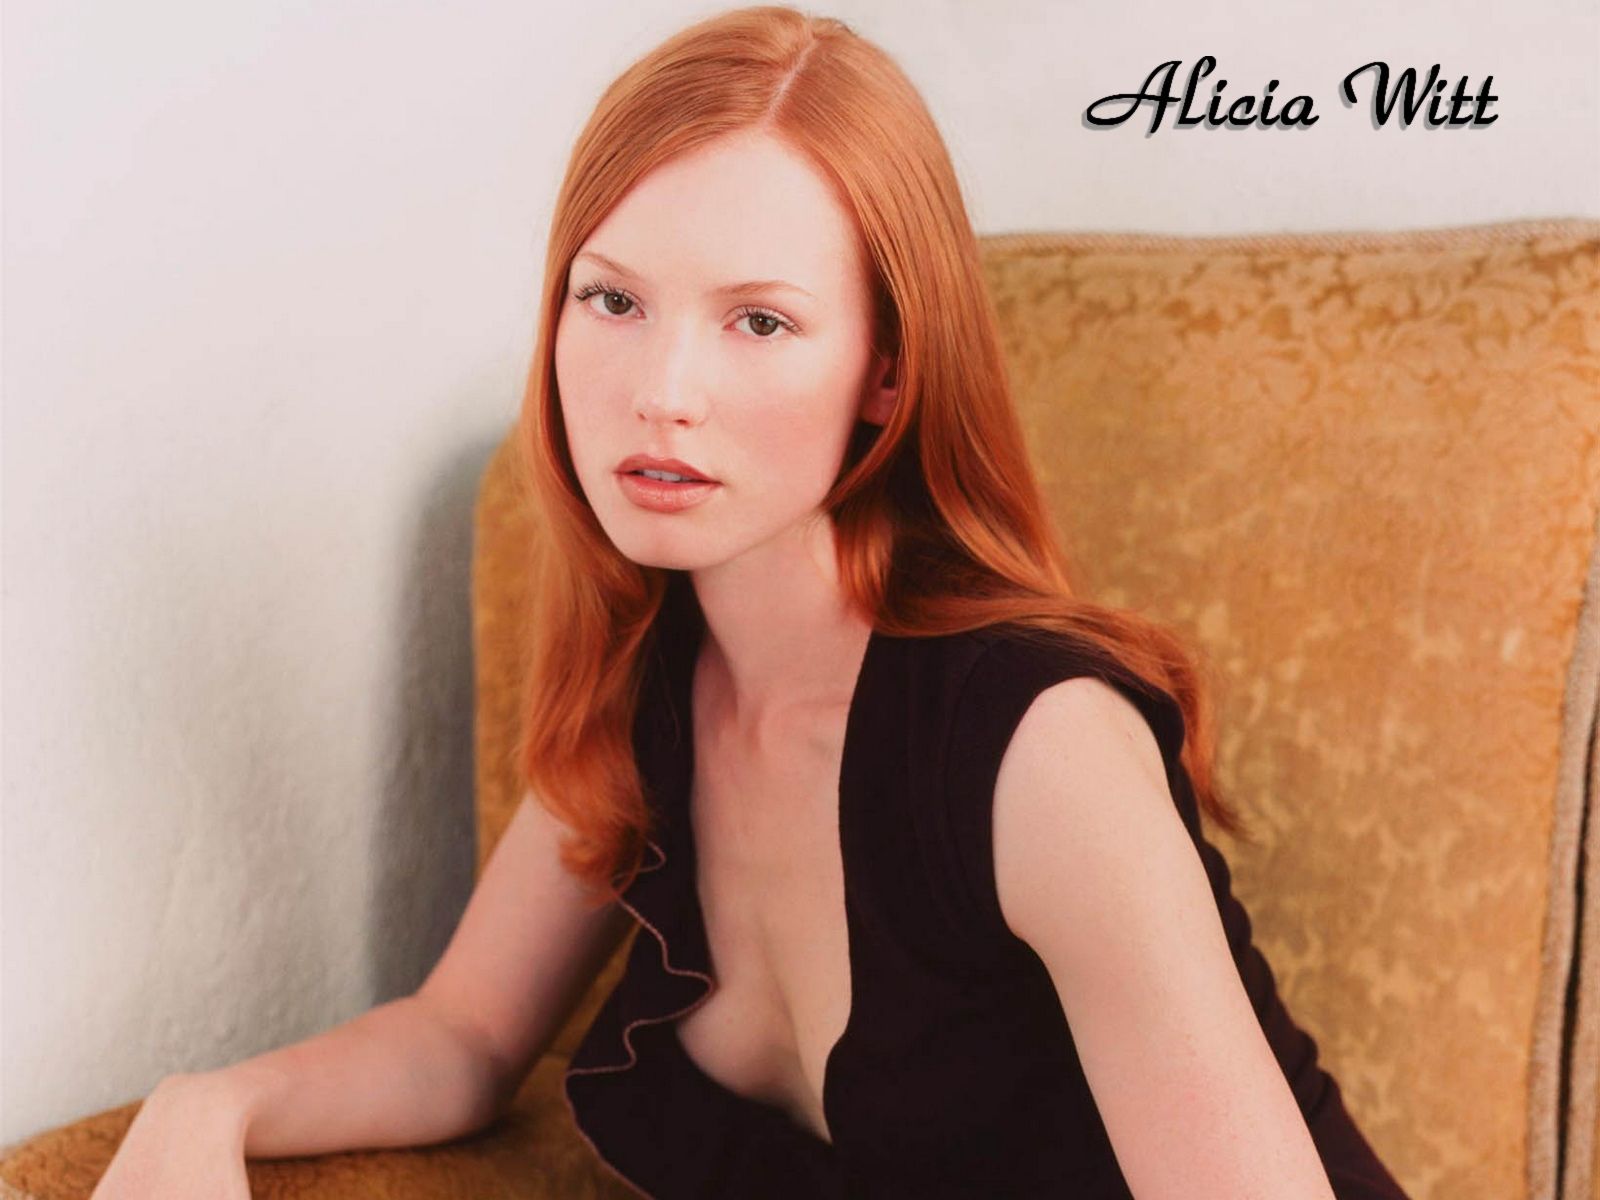 Alicia Witt nude (39 photos) Boobs, YouTube, butt